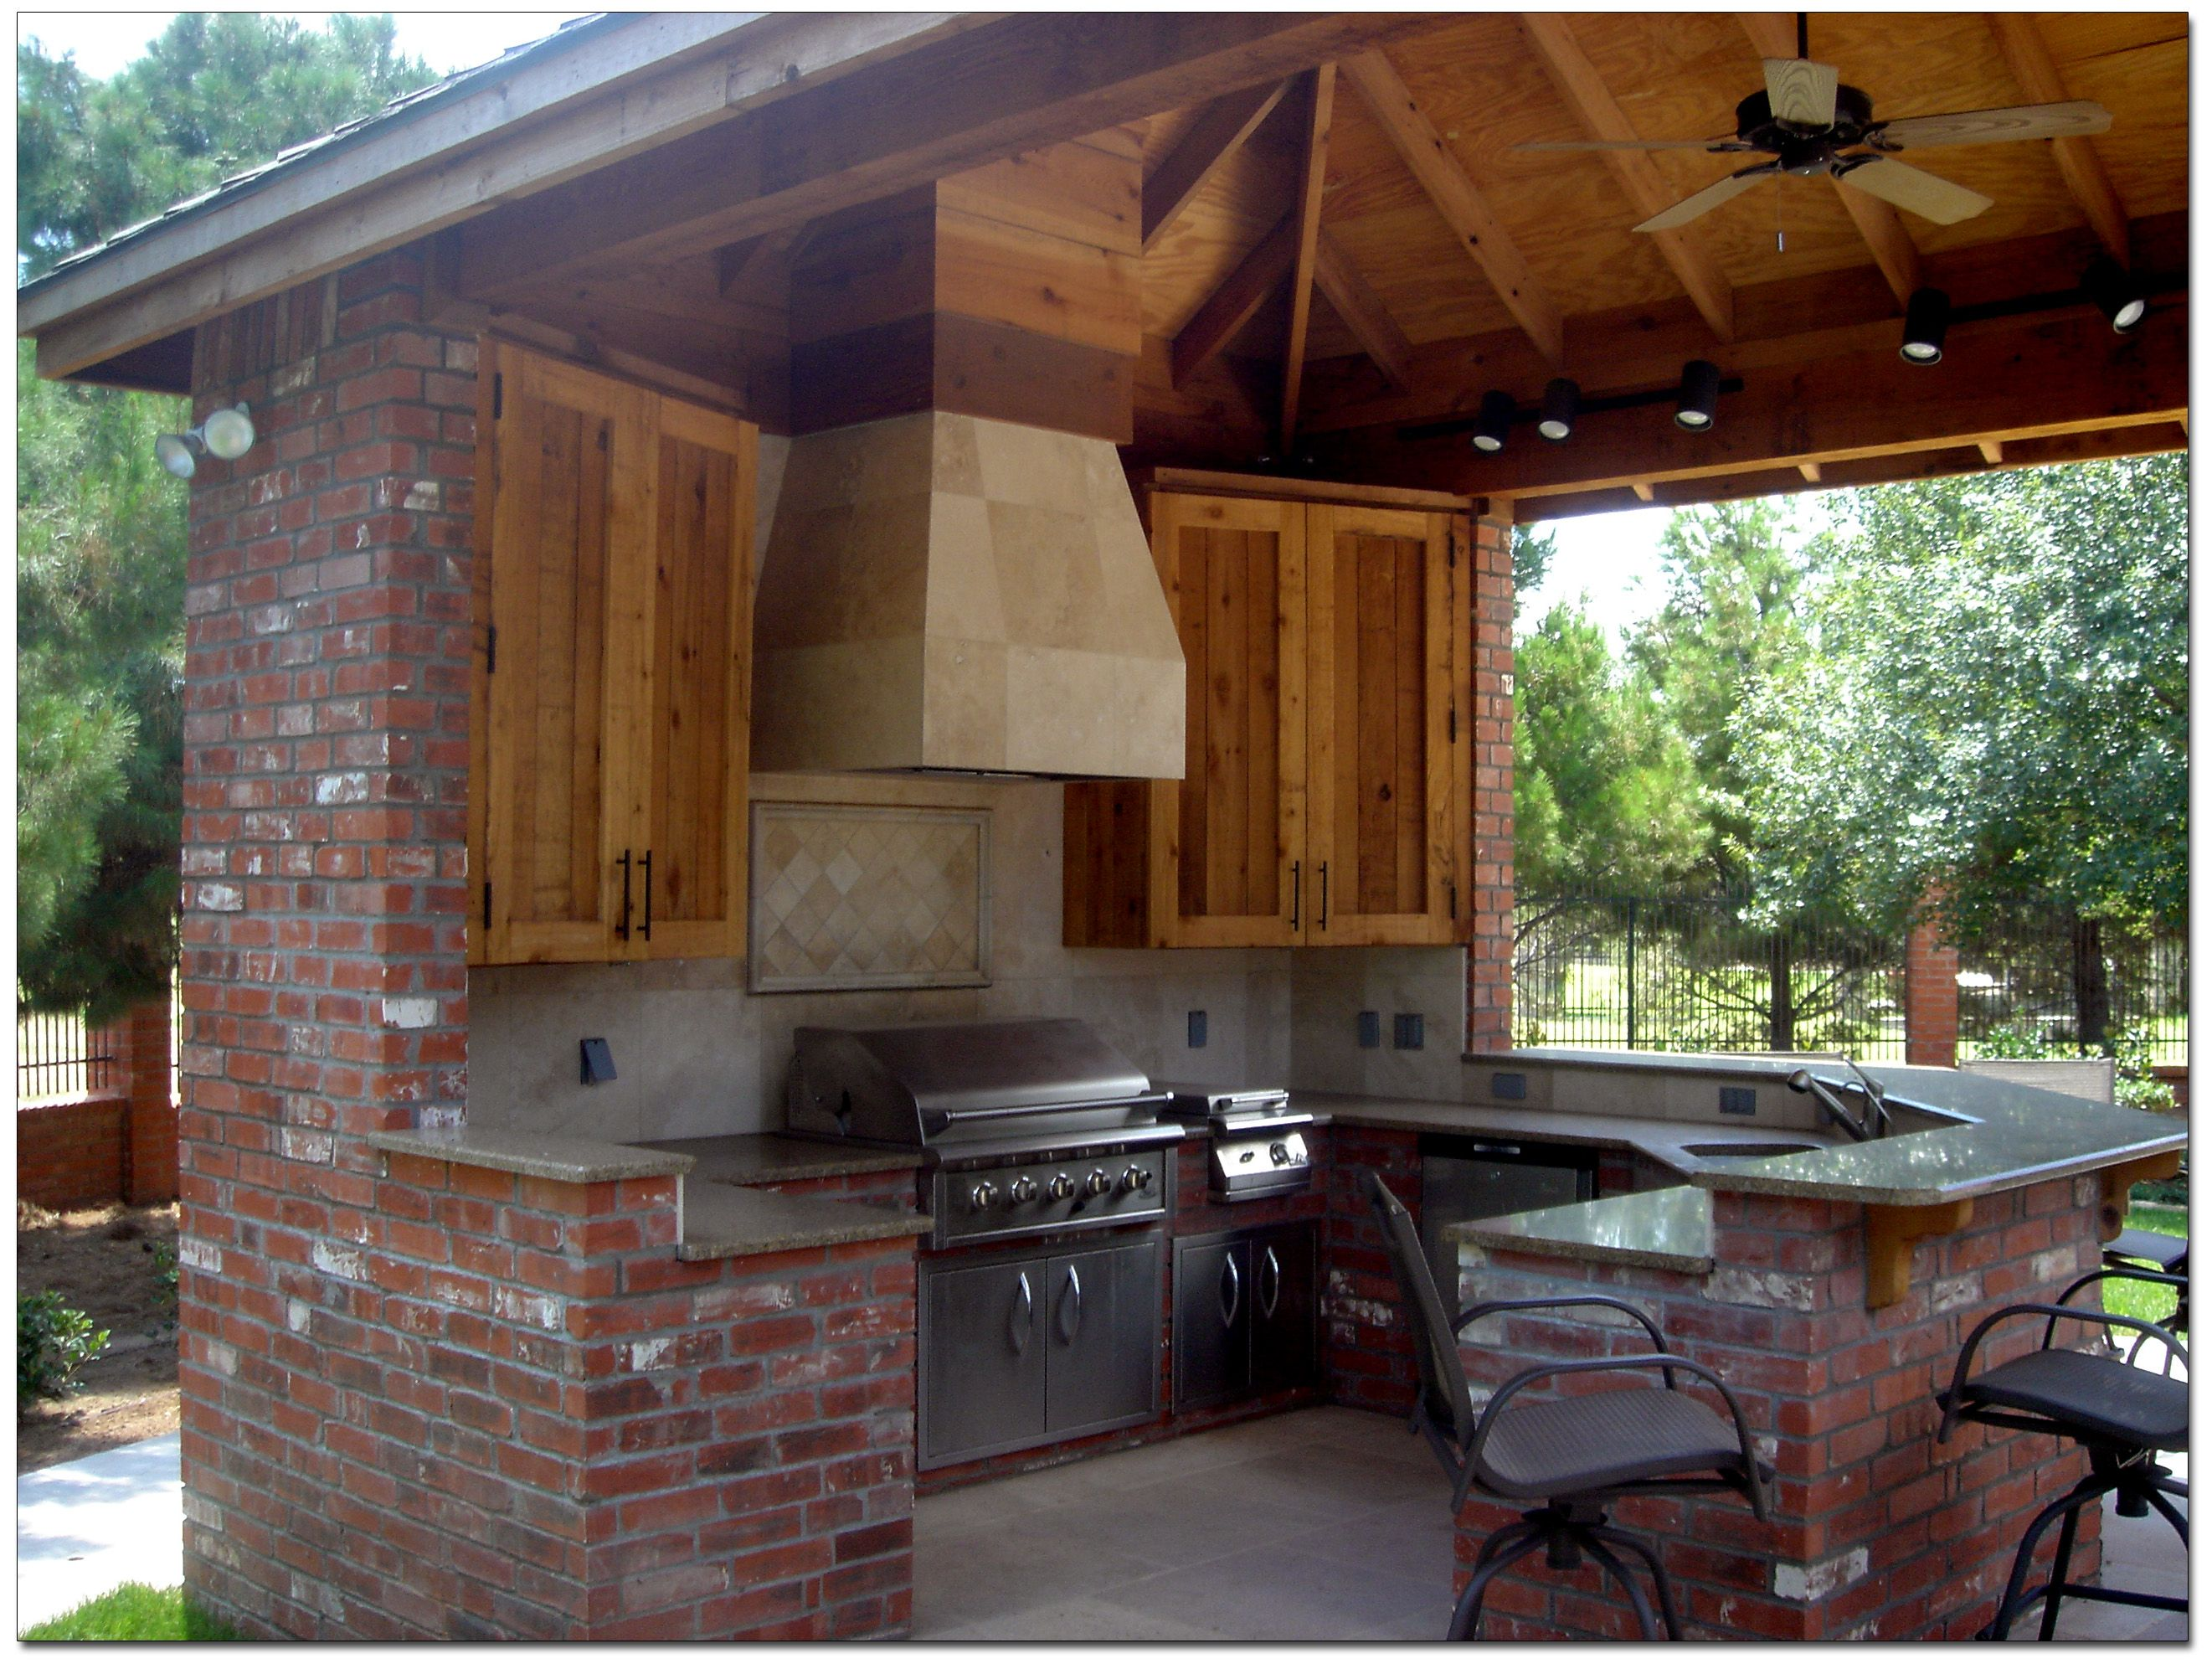 Outdoor kitchens and pool designs outdoor kitchen for Outdoor kitchen designs small spaces